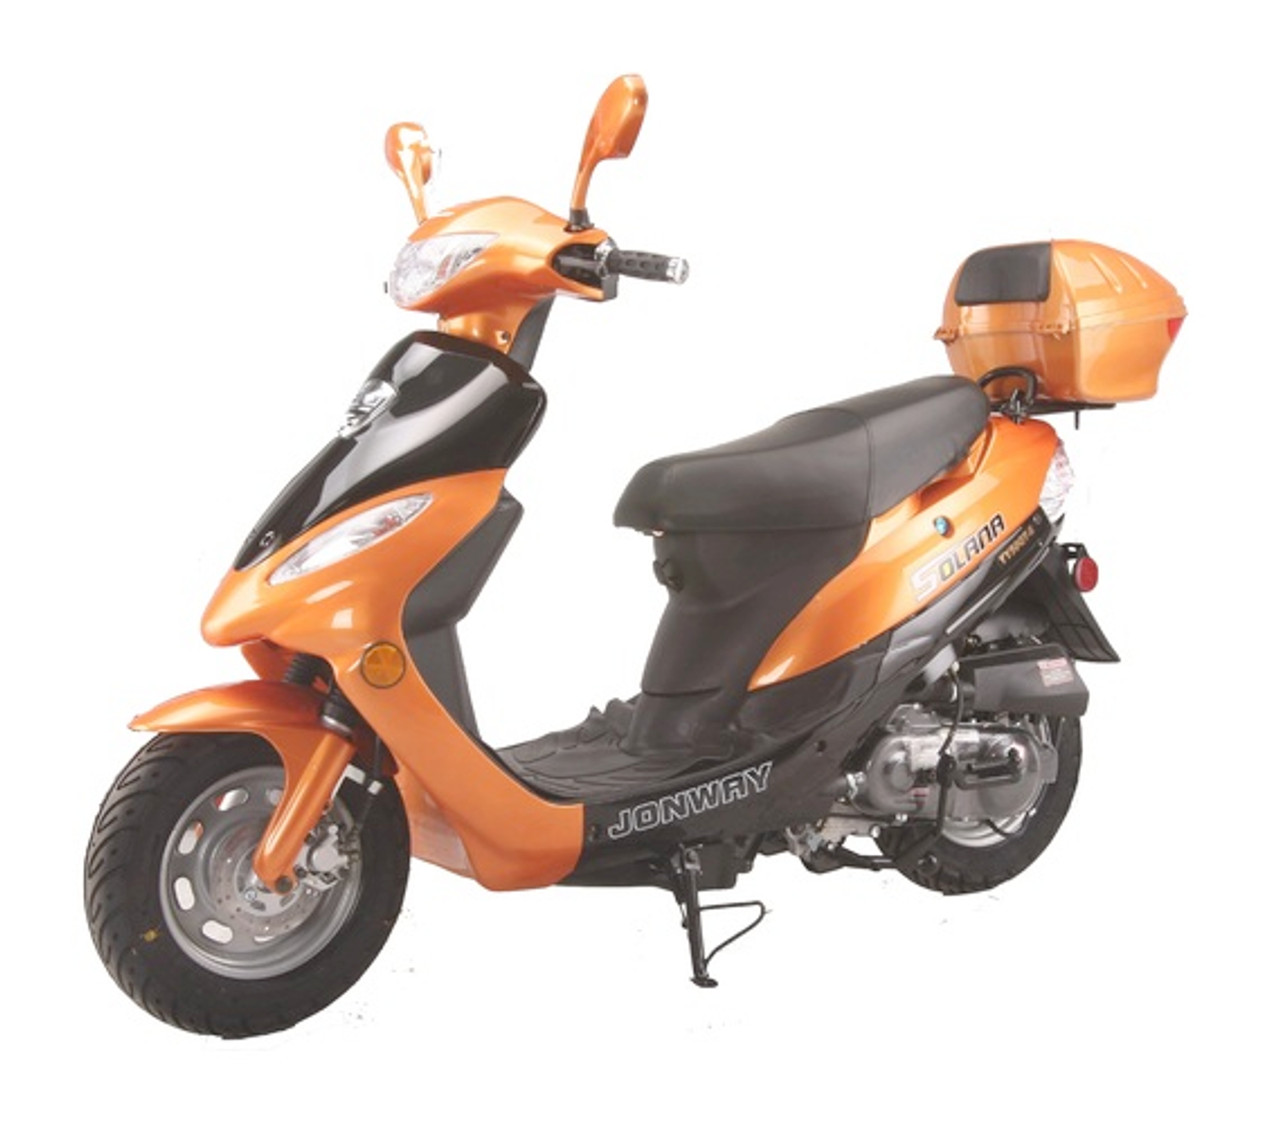 Cougar Cycle SOLANA 49cc QT-5 Scooter, 4 Stroke, Air-Forced Cool, Single Cylinder